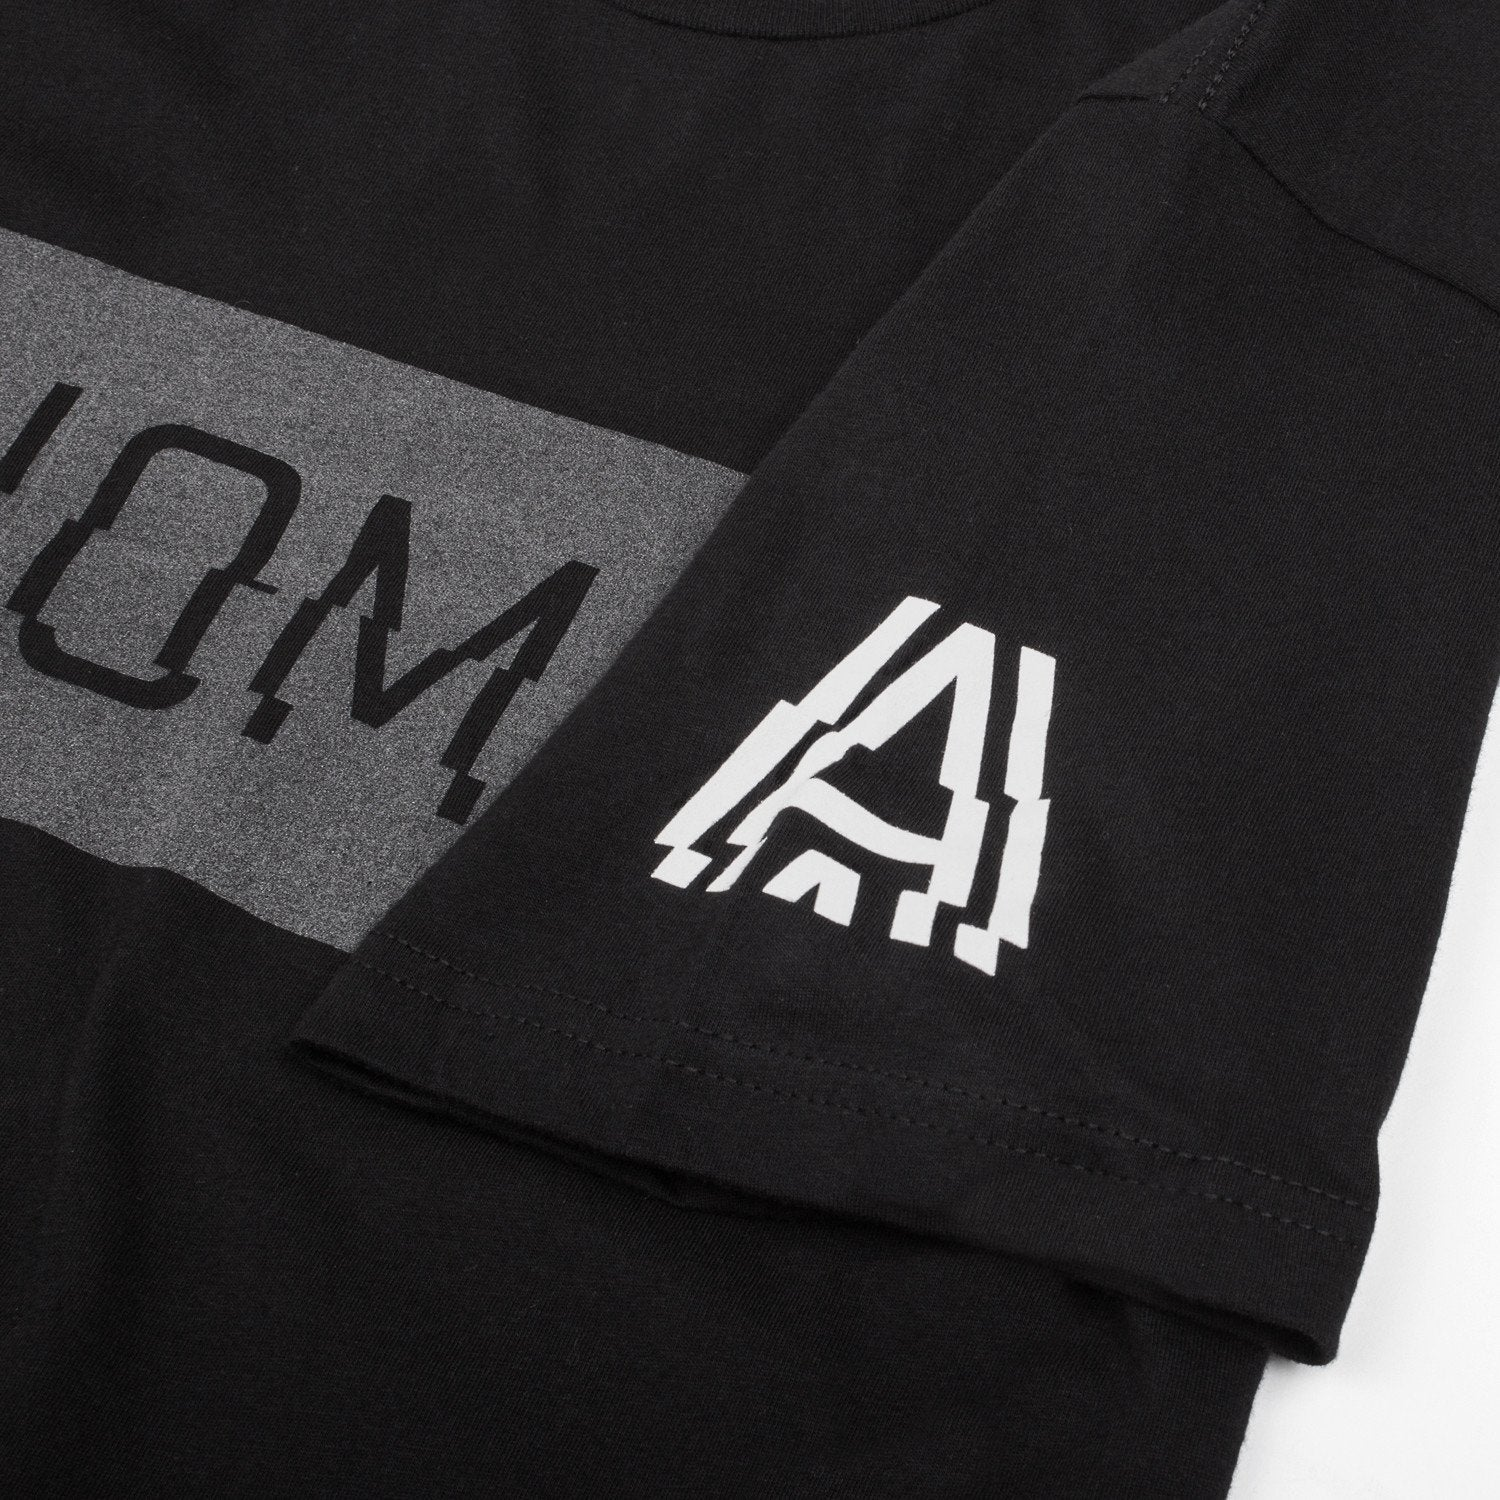 Reach Records Lecrae 'Anomaly Reflective' T-Shirt - Sleeve